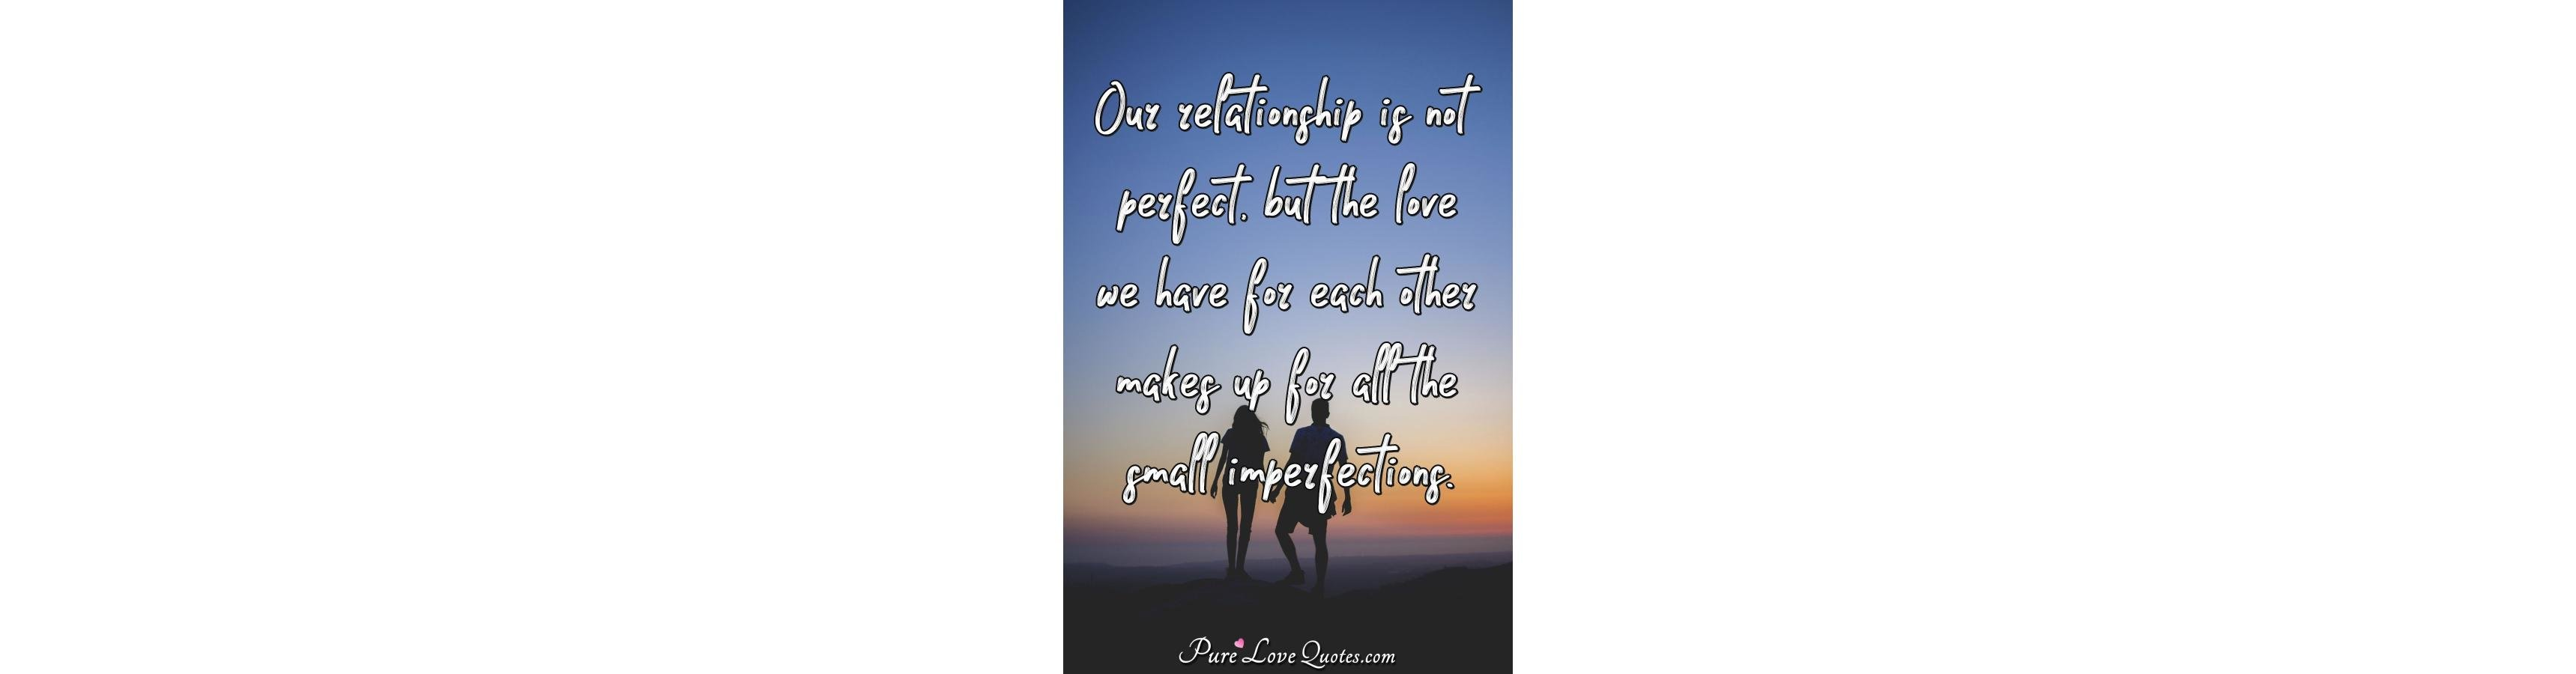 Sayings Our Relationship Is Not Perfect But The Love We Have For Each Other Makes Up Purelovequotes Zariascom Our Relationship Is Not Perfect But The Love We Have For Each Other